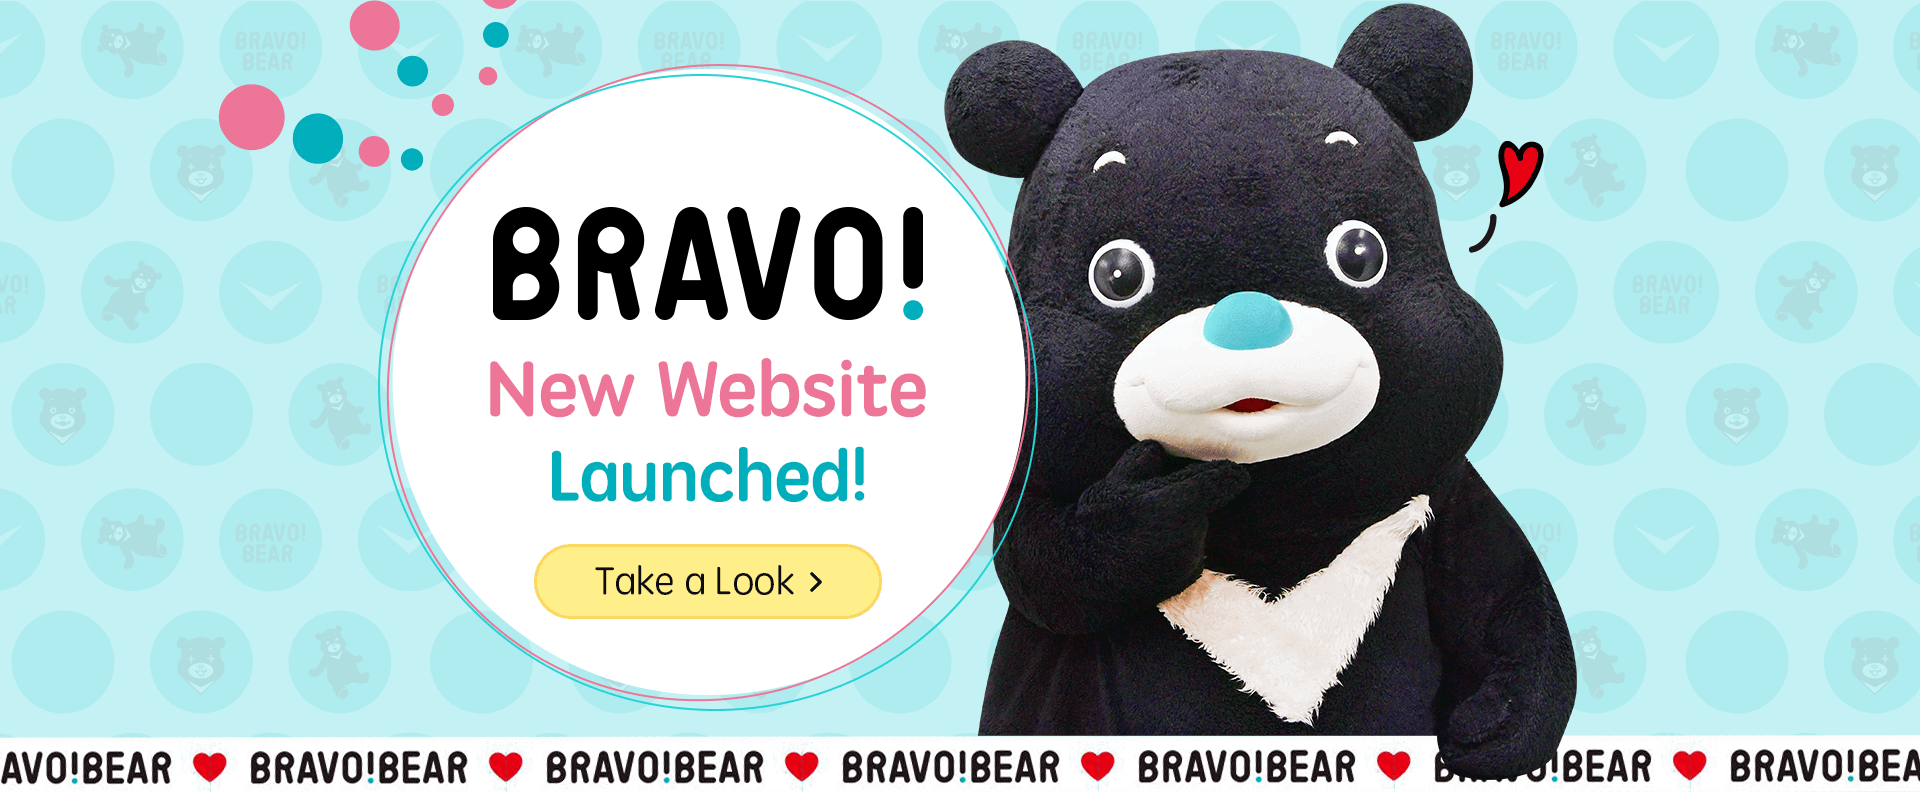 BRAVO New Website Launched